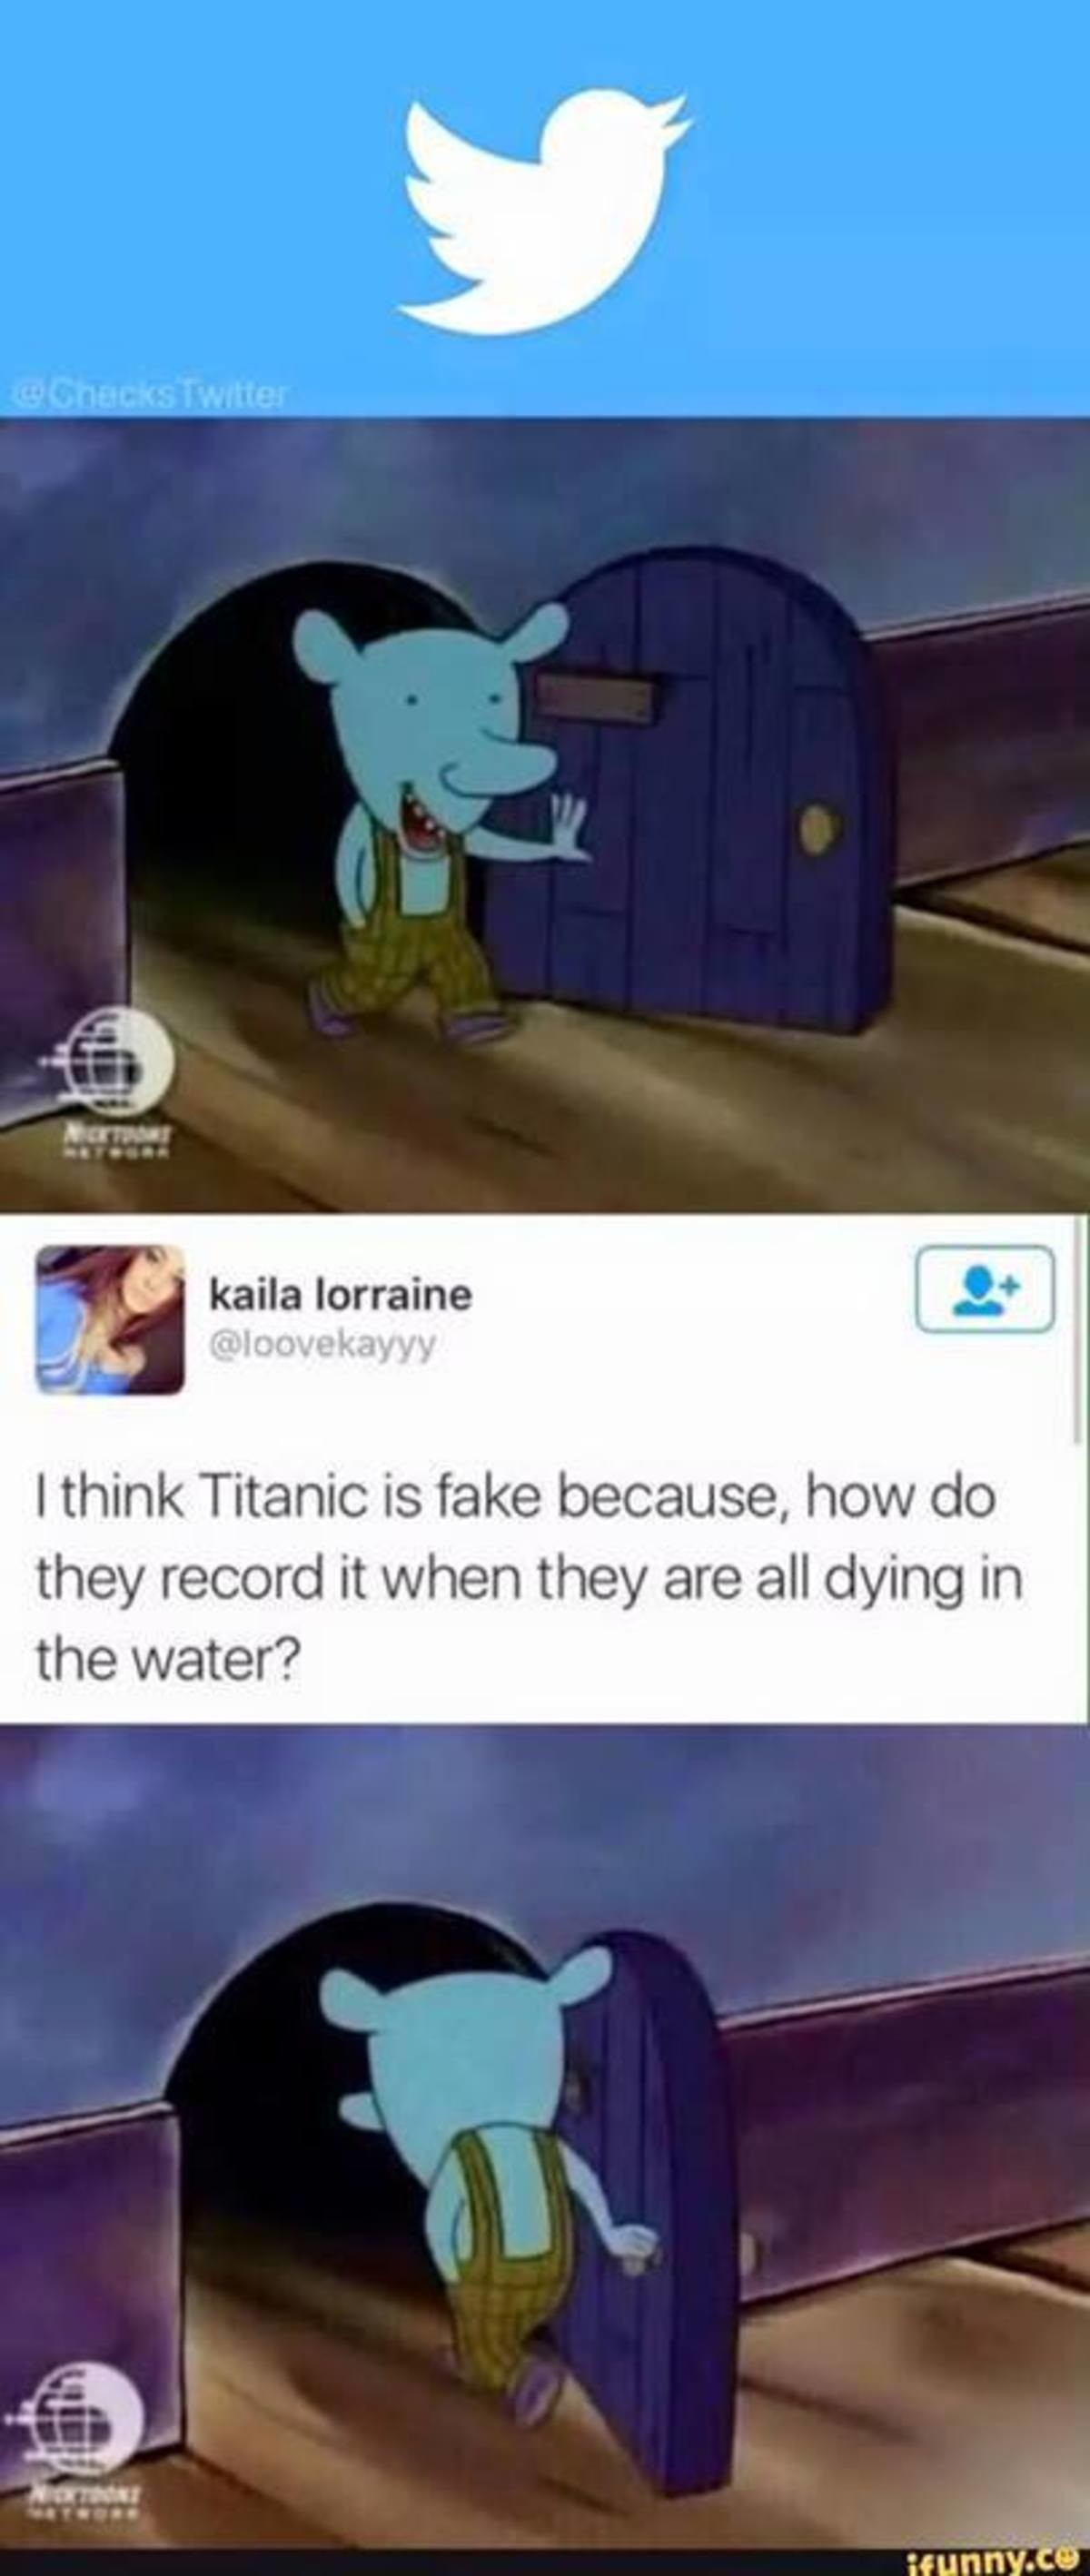 Dumb Tweets. . t kaila lorraine I think Titanic is fake because, how do they record it when they are all dying in the water?hawk if both basketball teams just w